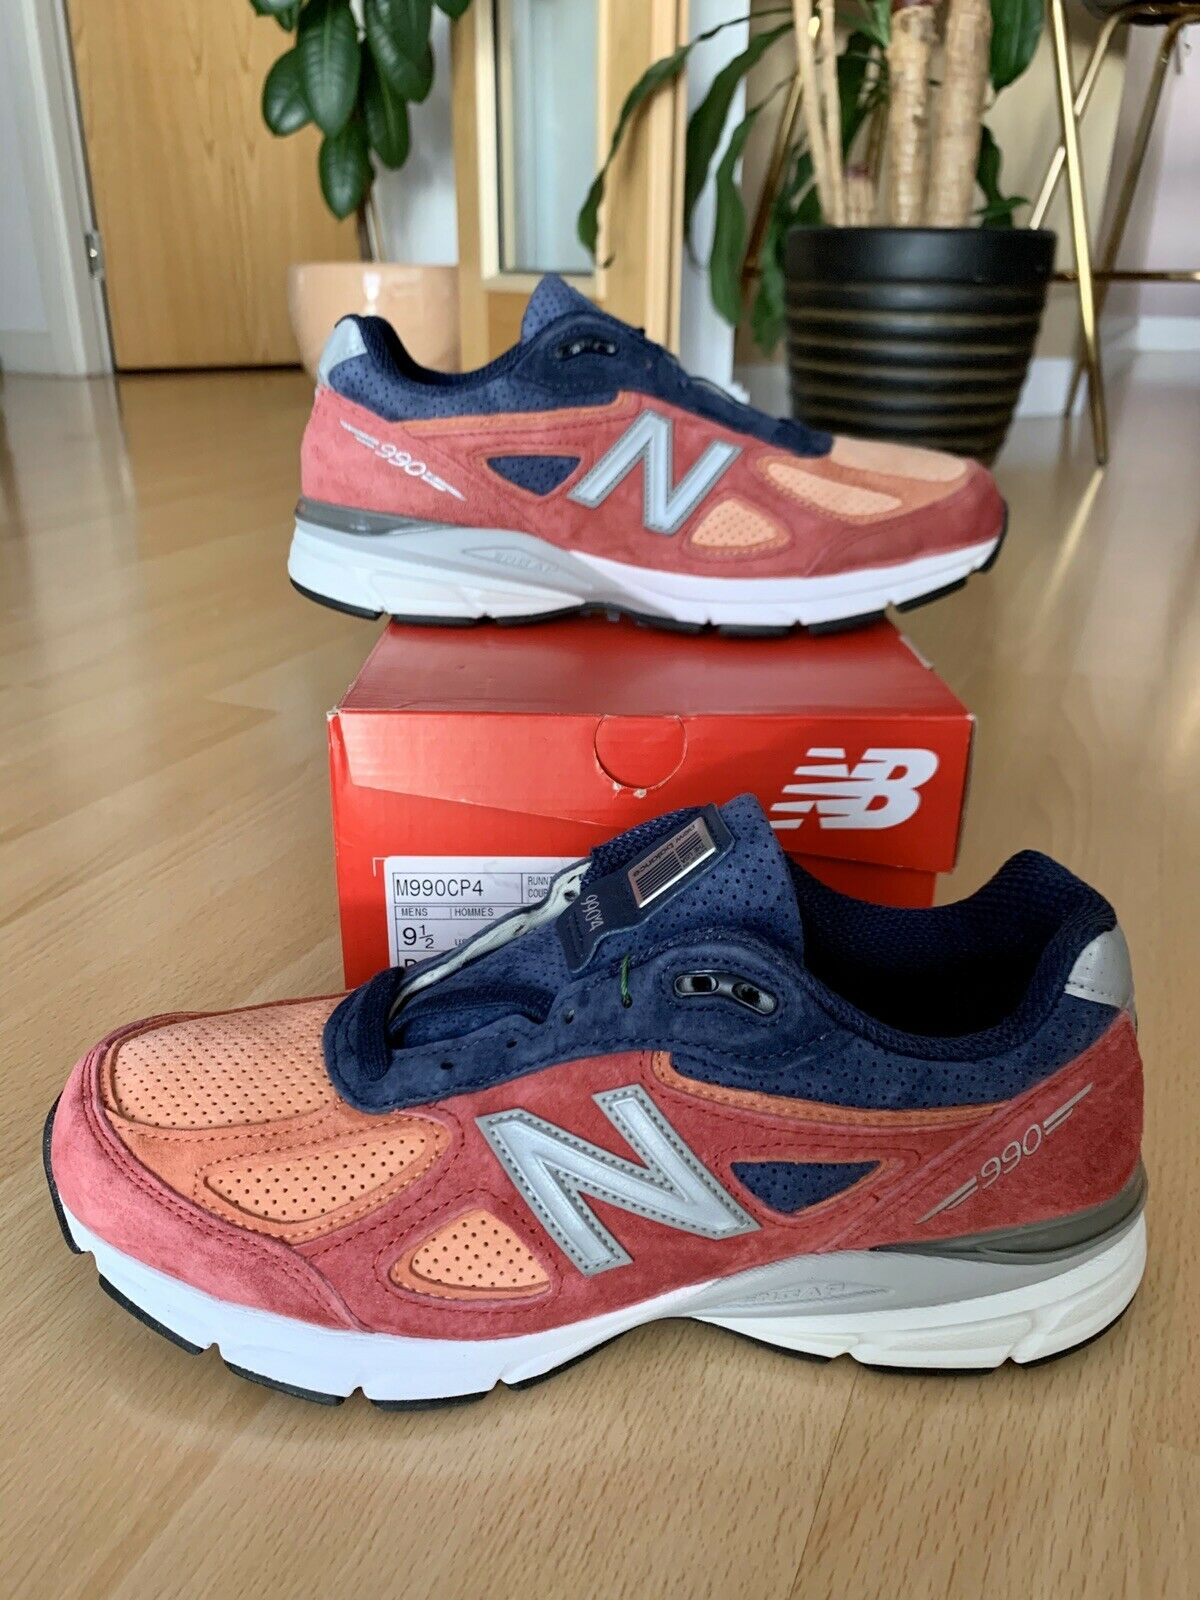 New Balance 990v4 Copper Rose Pigment